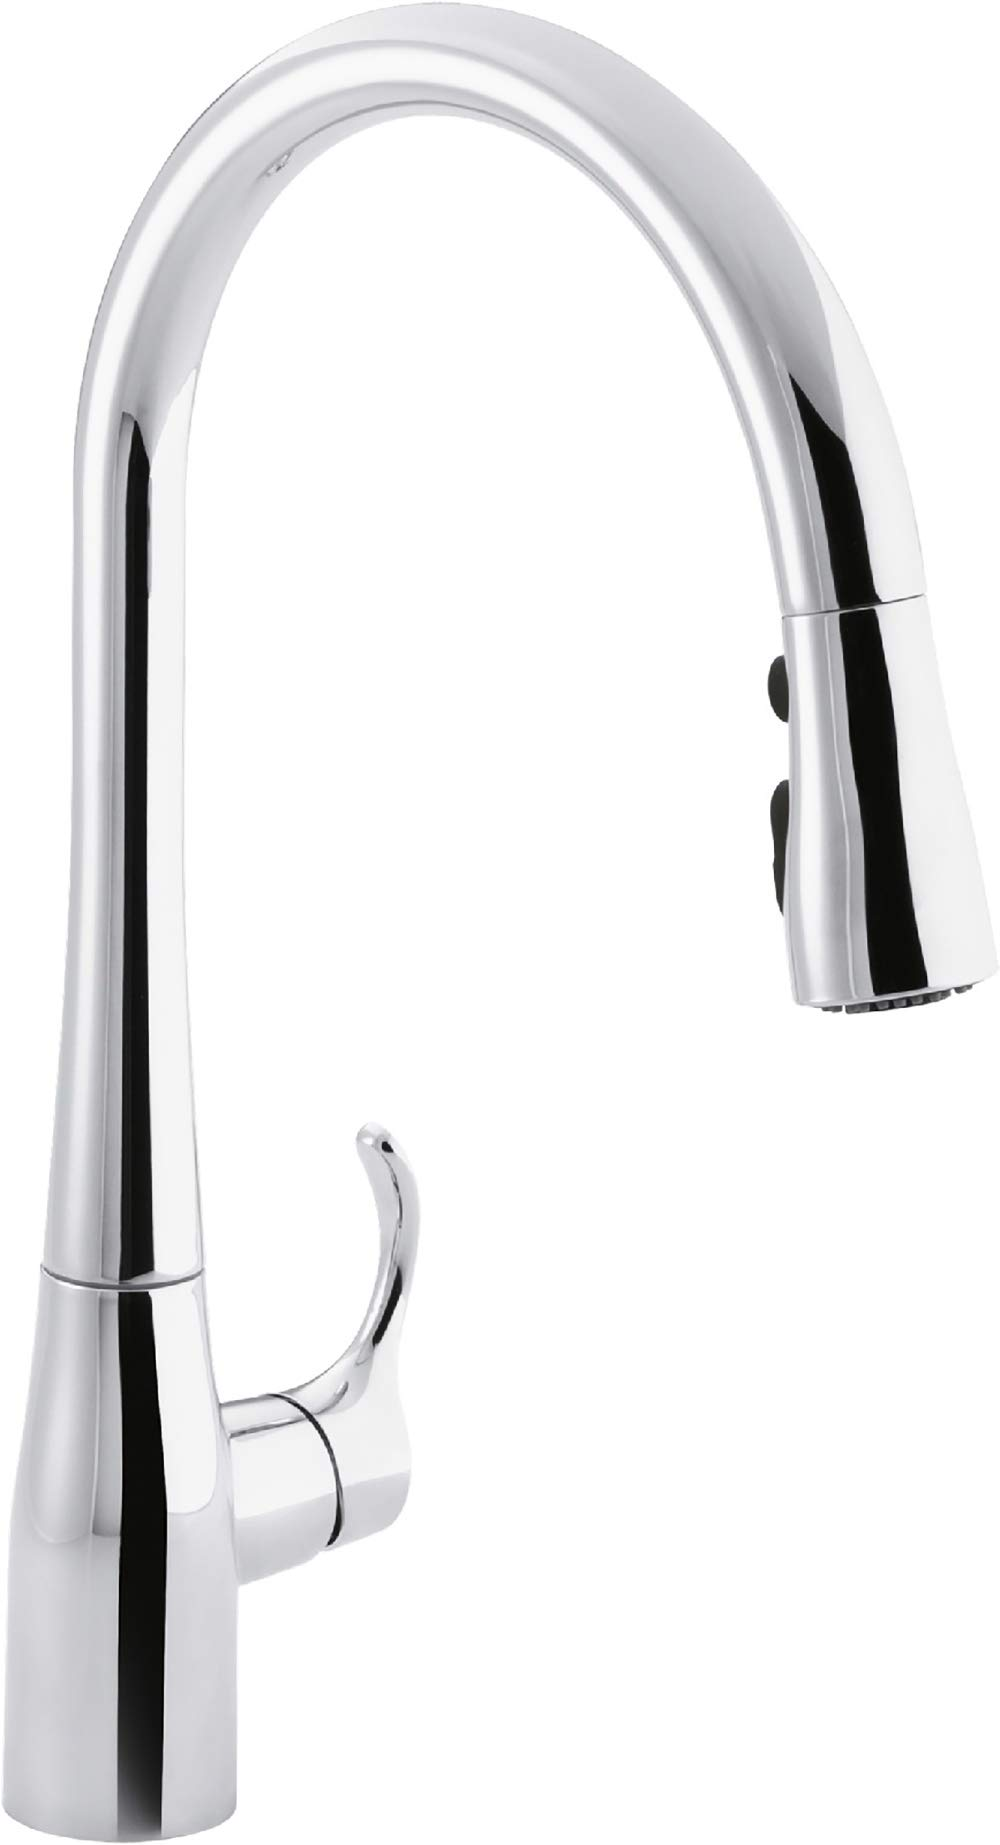 KOHLER K-596-CP Simplice High-Arch Single-Hole or Three-Hole, Single Handle, Pull-Down Sprayer Kitchen Faucet, Polished Chrome with 3-function Spray Head, Sweep Spray and Docking Spray Head Technology by Kohler (Image #1)